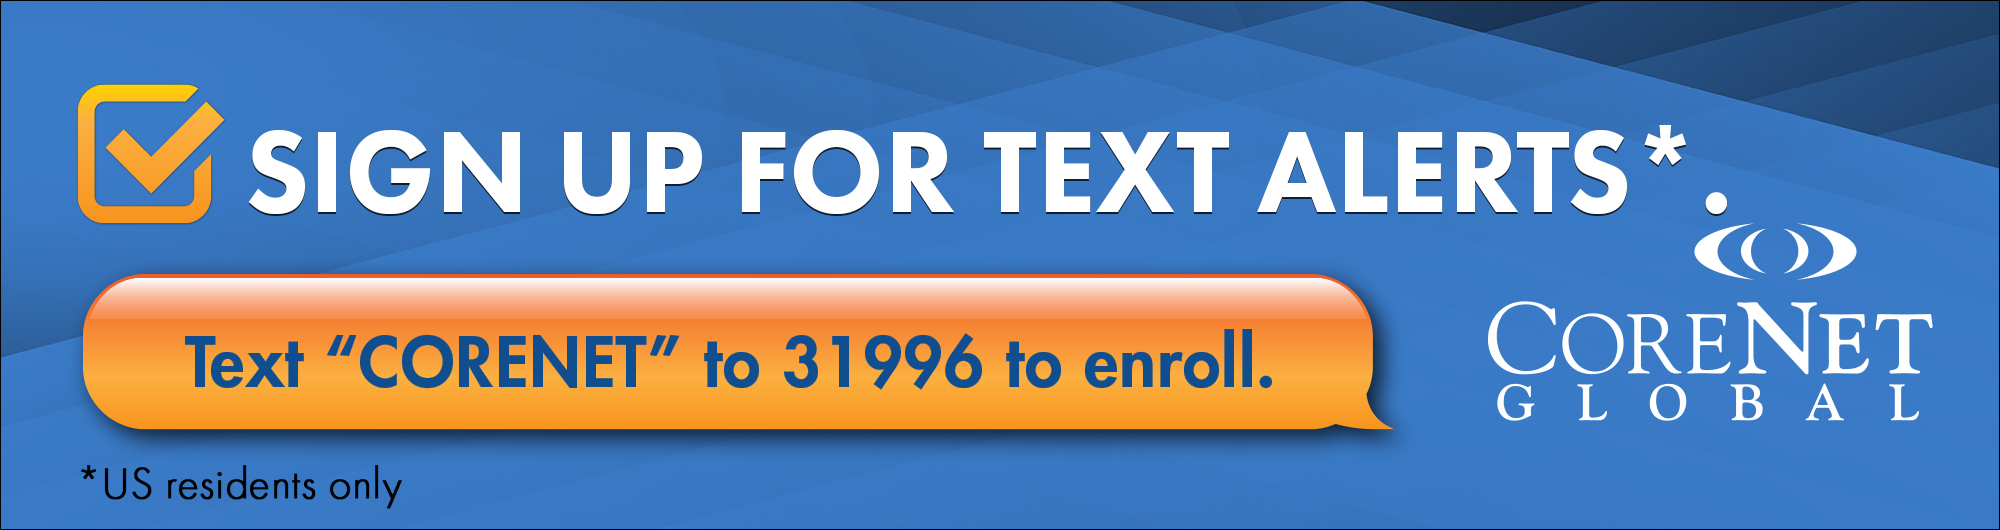 Home page Text Alert Banner 2019